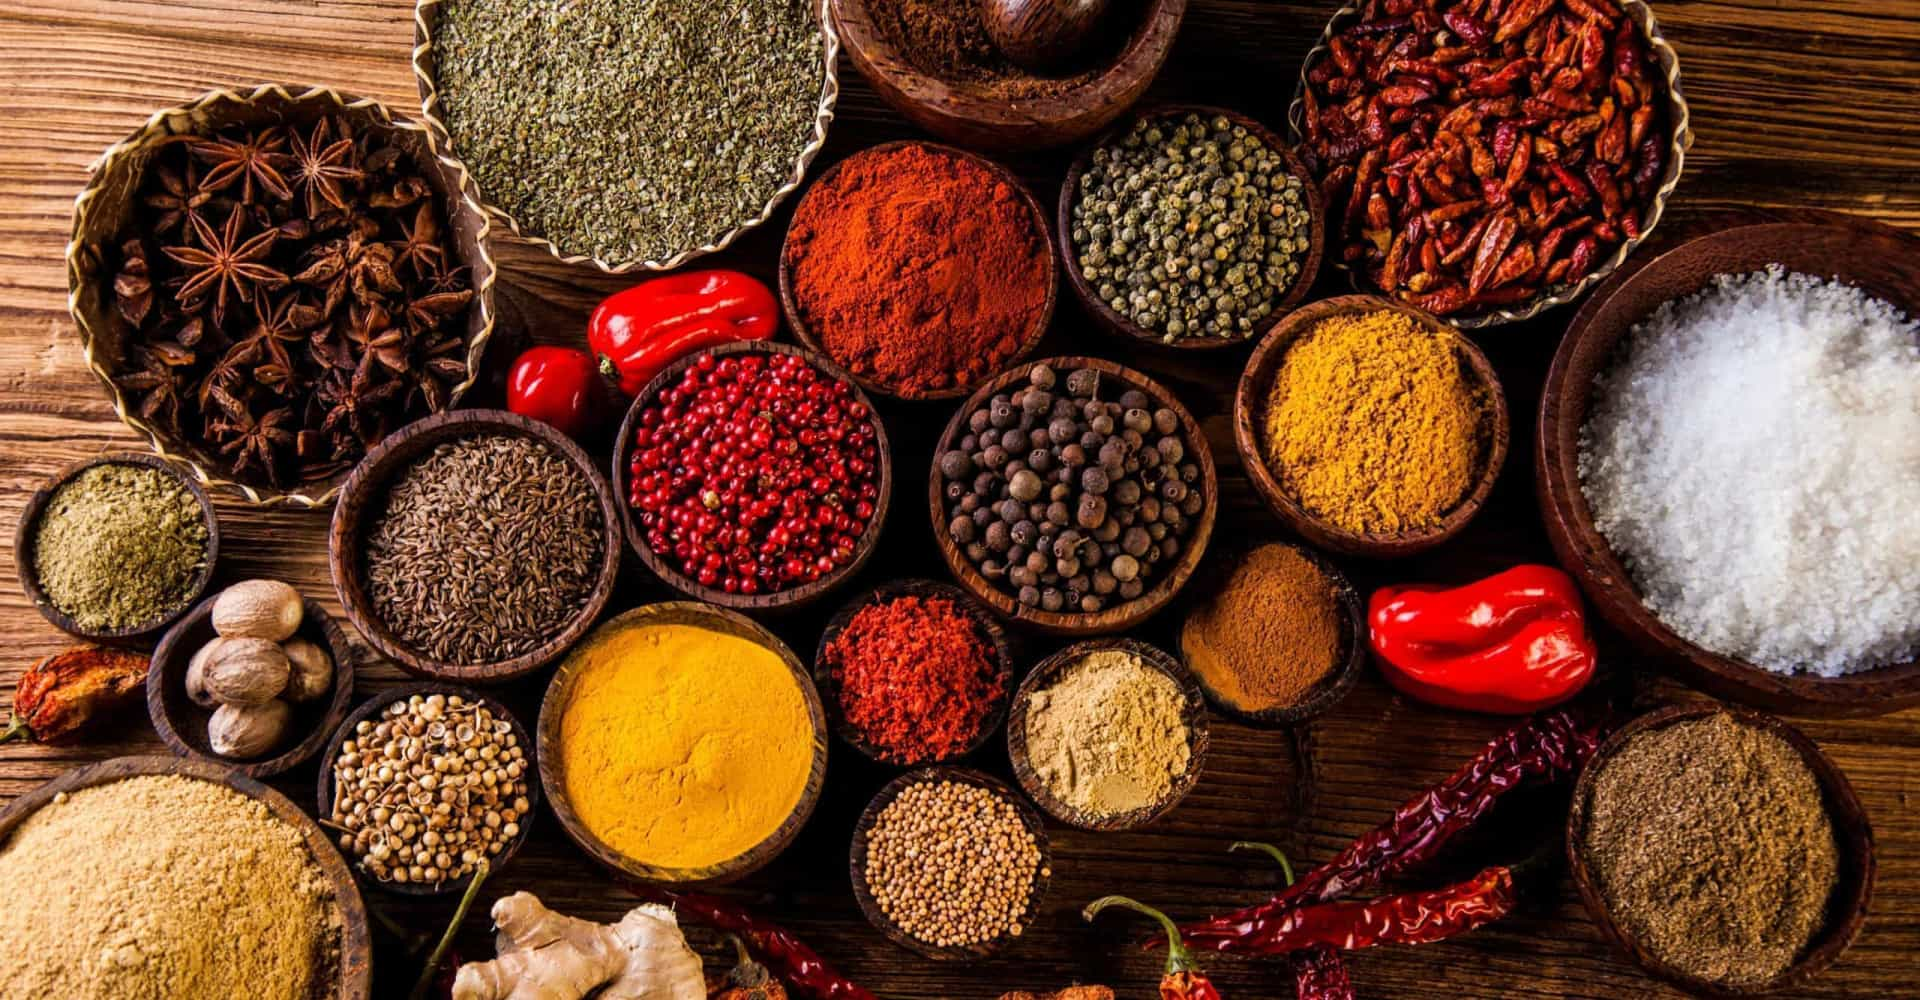 Exotic spices and how to cook with them